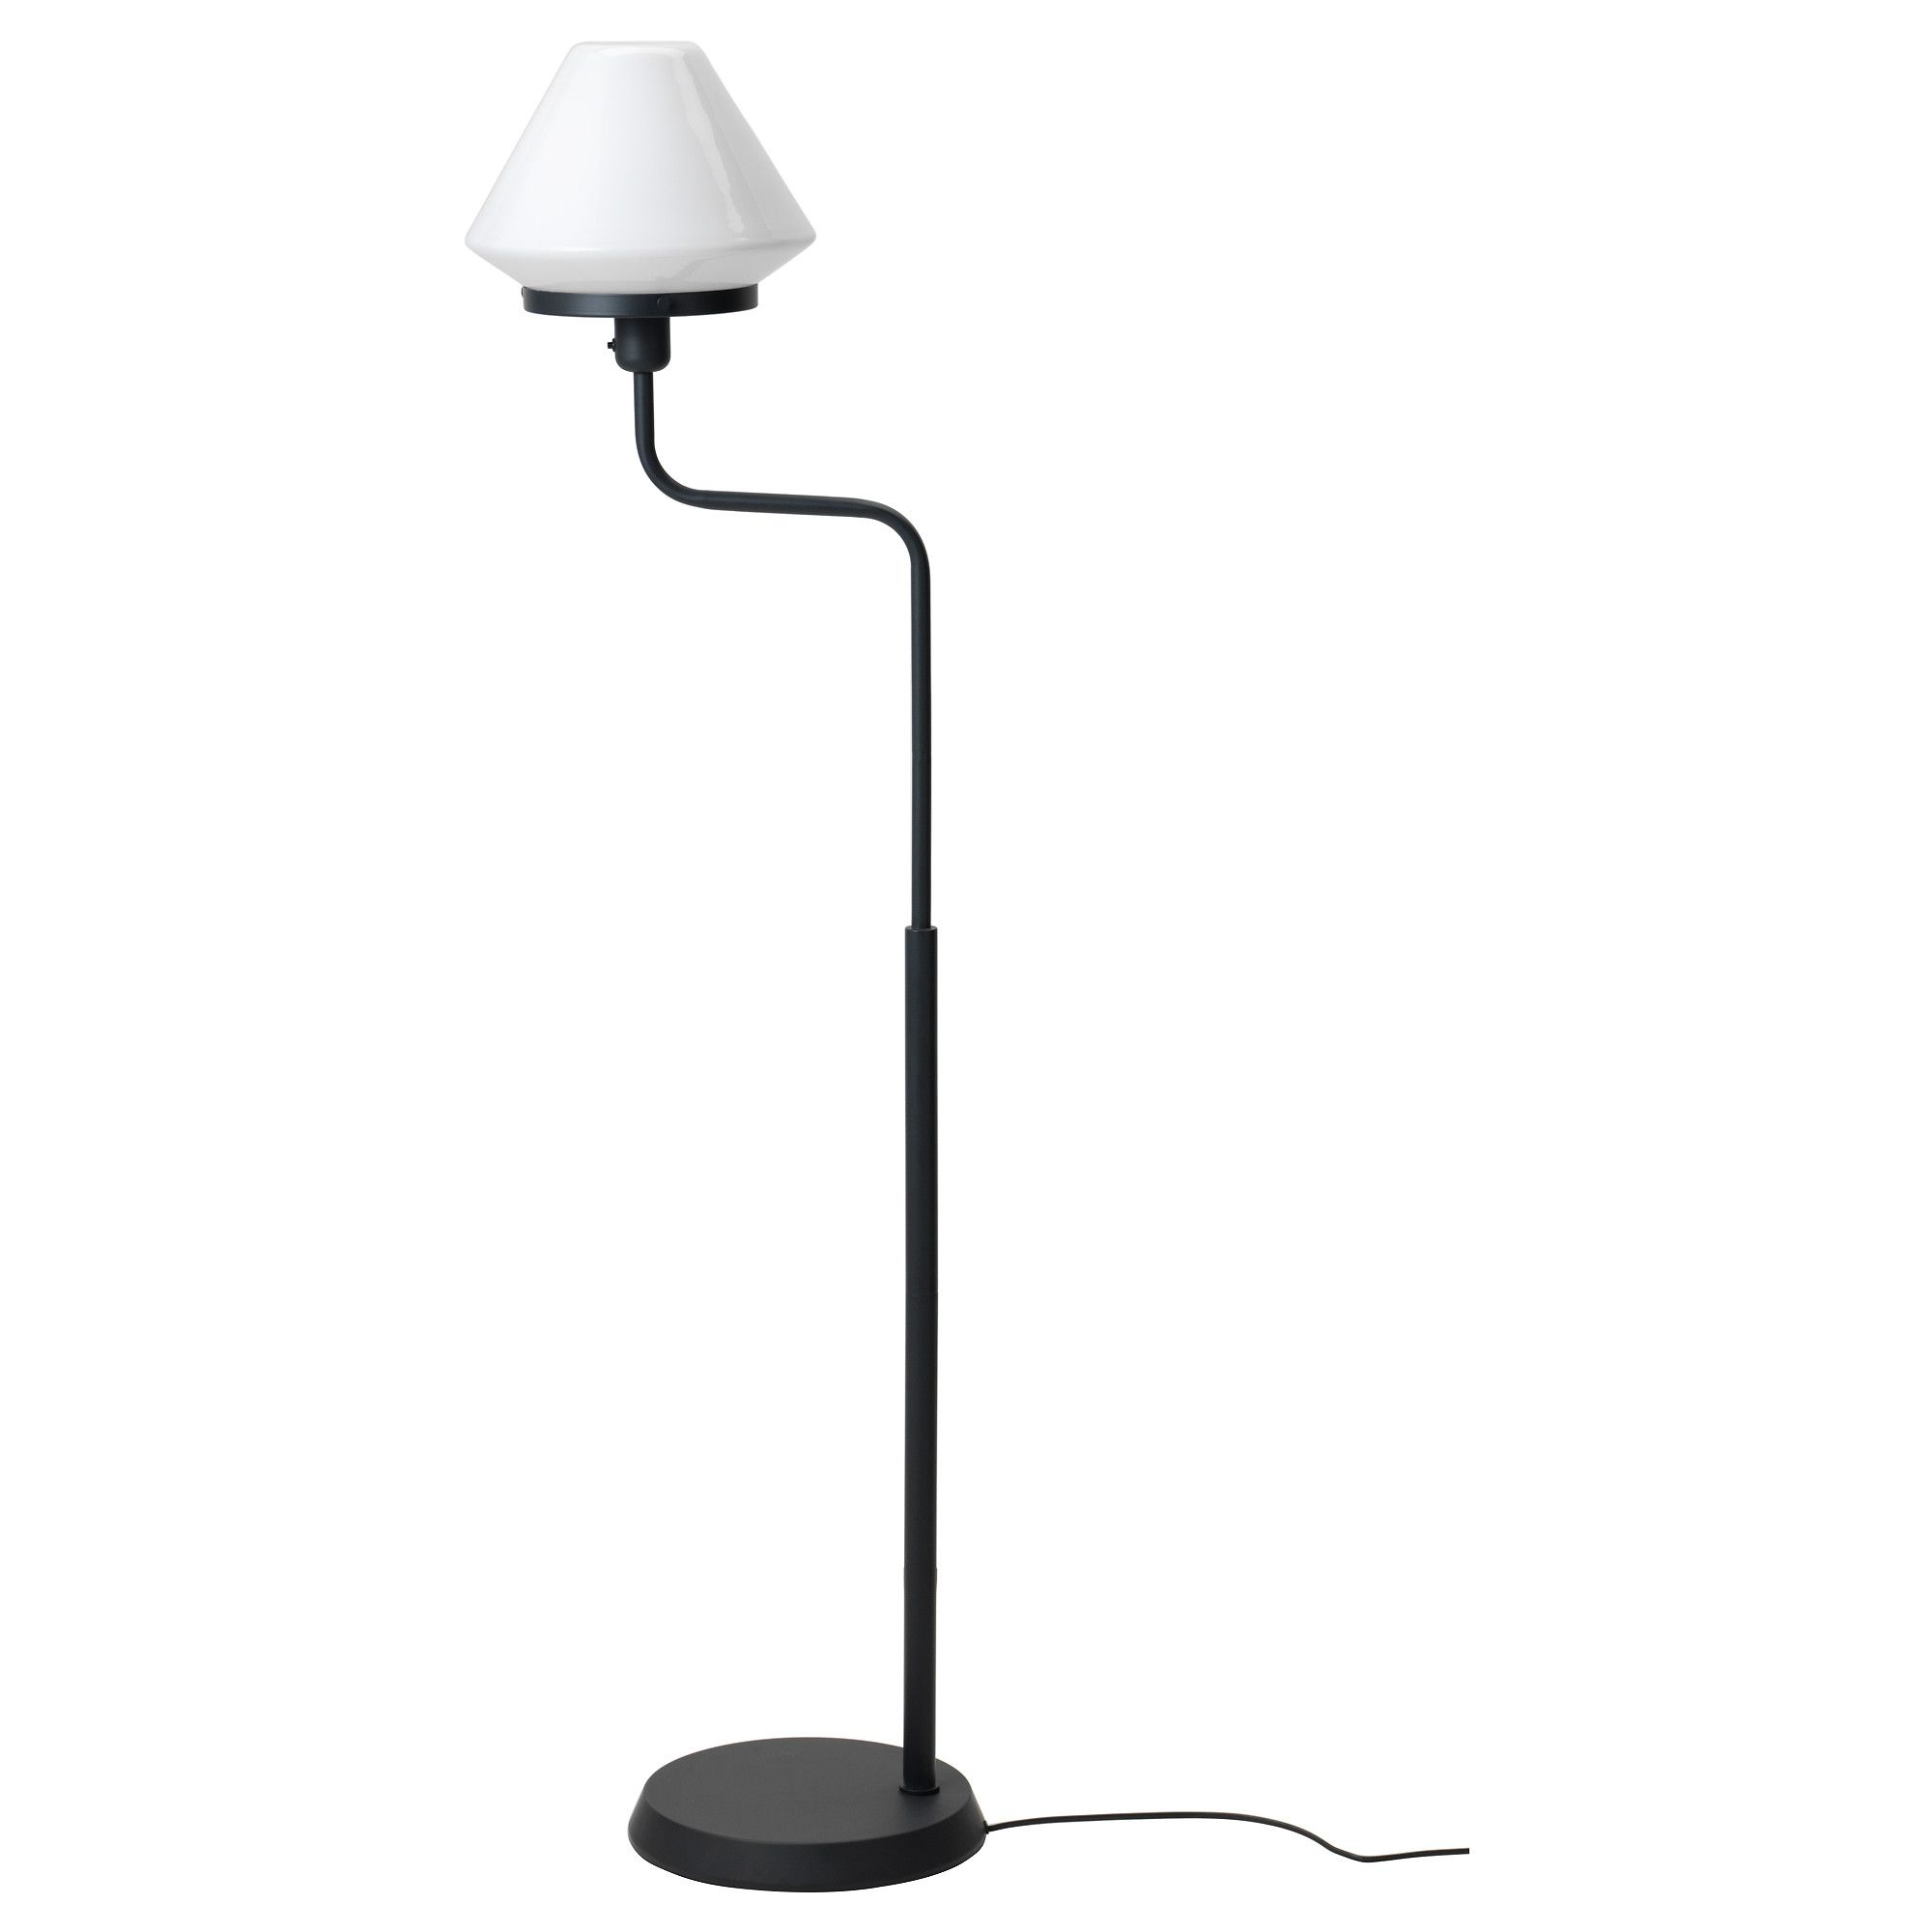 Ikea lvngen floor lamp gives a soft glowing light that home furnishings kitchens appliances sofas beds mattresses ikea floor lampsikeawarmstanding mozeypictures Choice Image